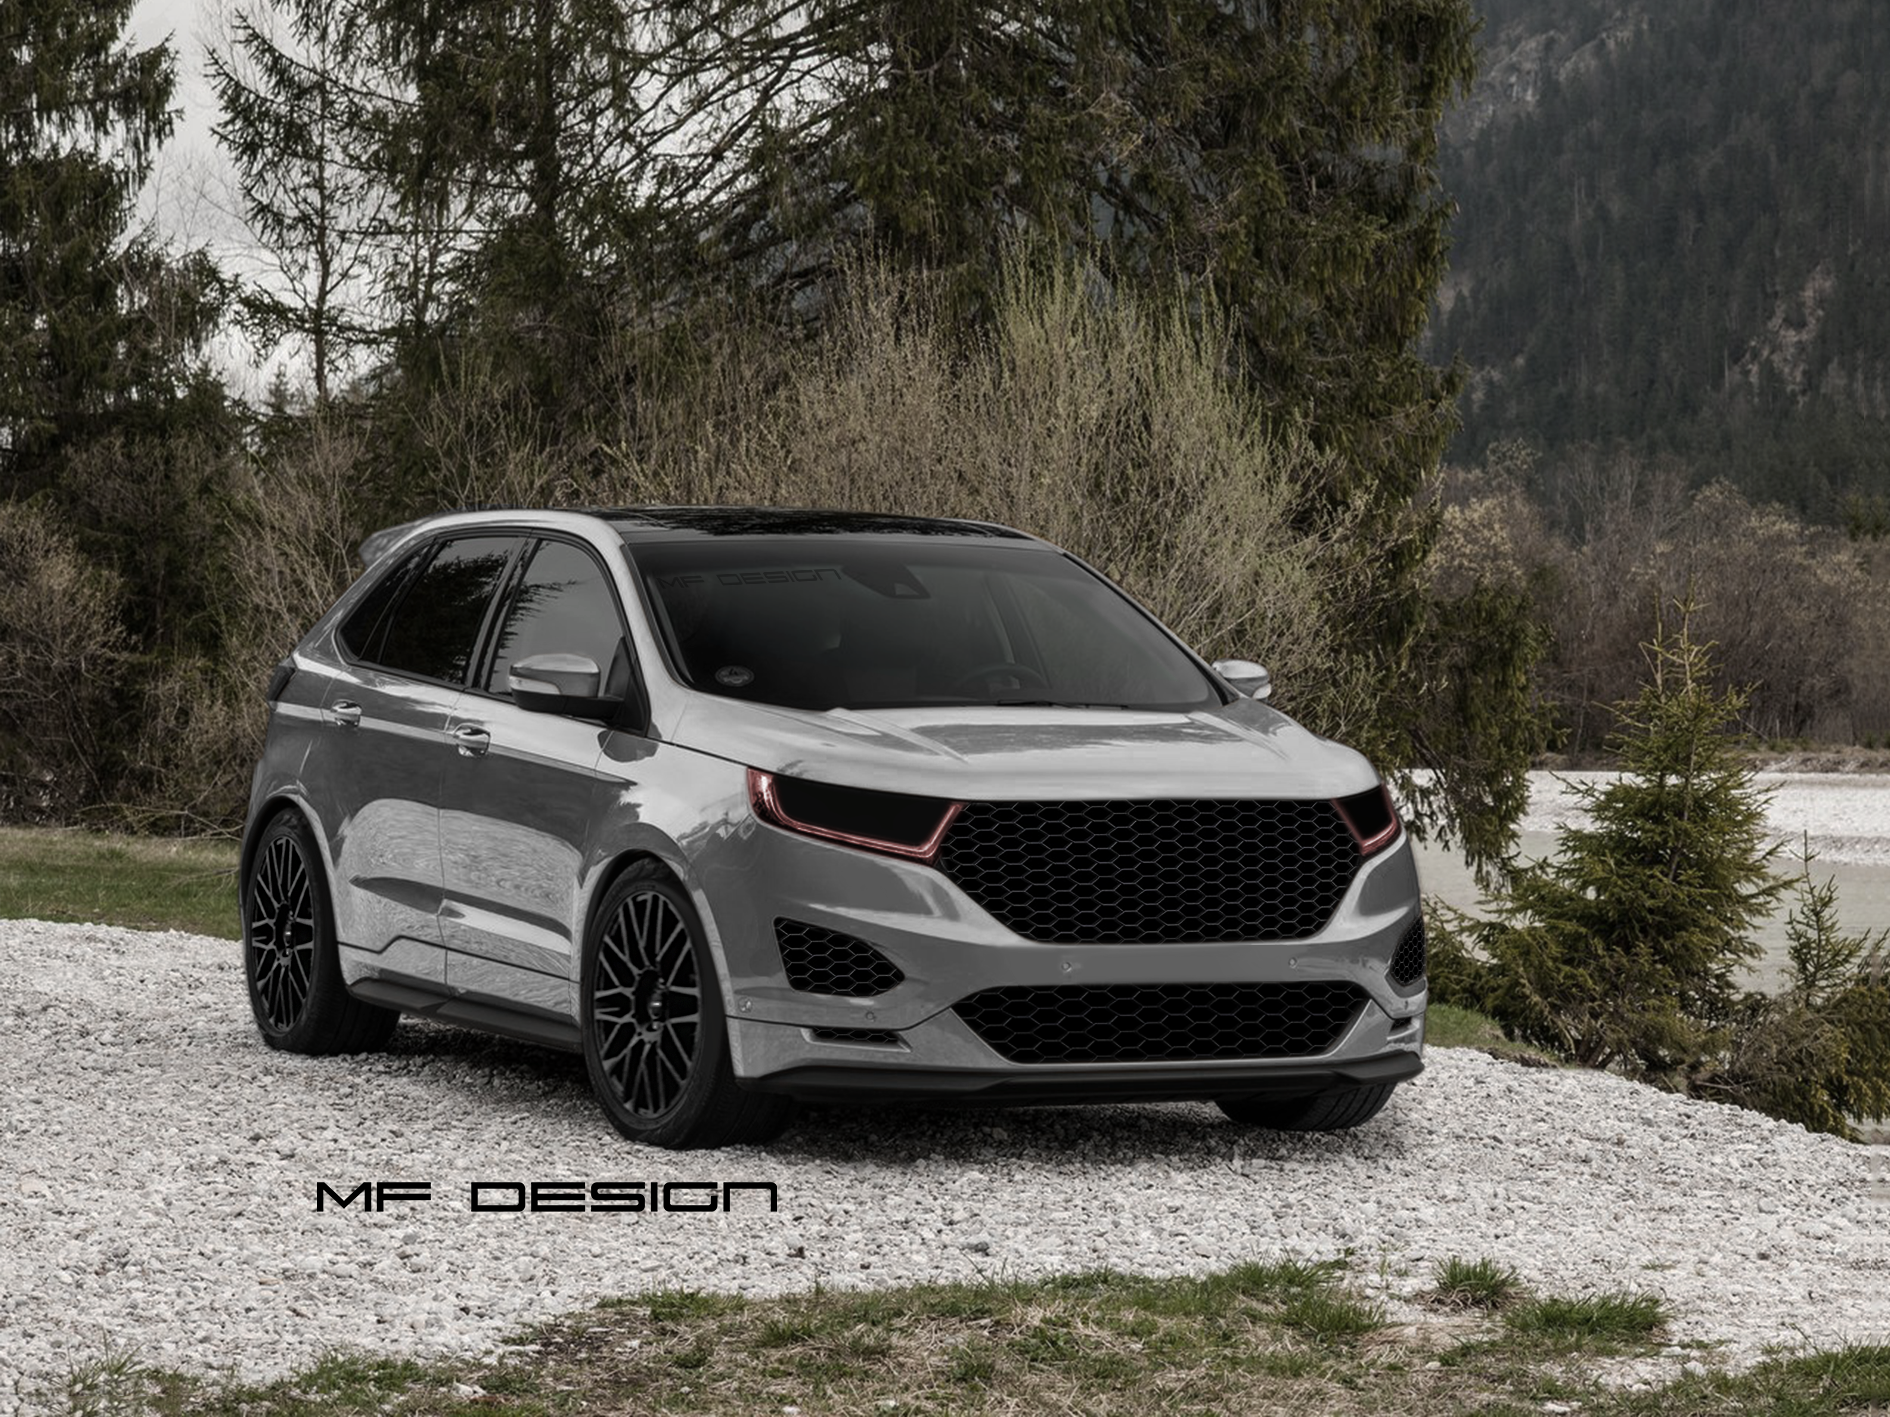 Mf Design Juggernaut Ford Edge